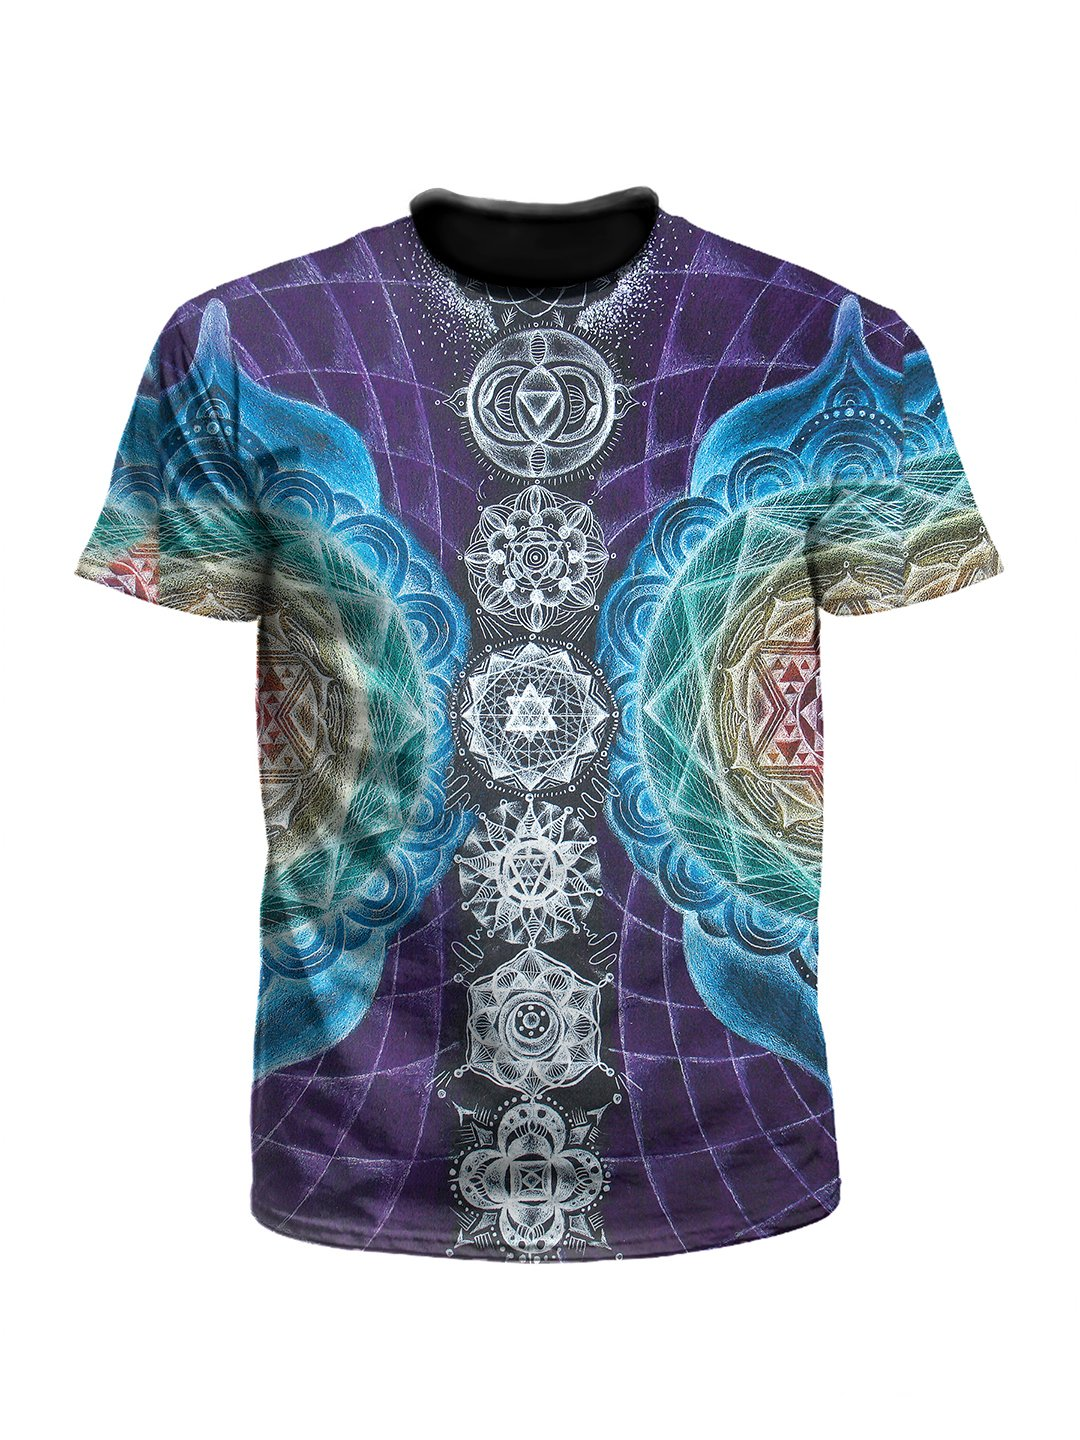 Attuned Visionary Art Tee